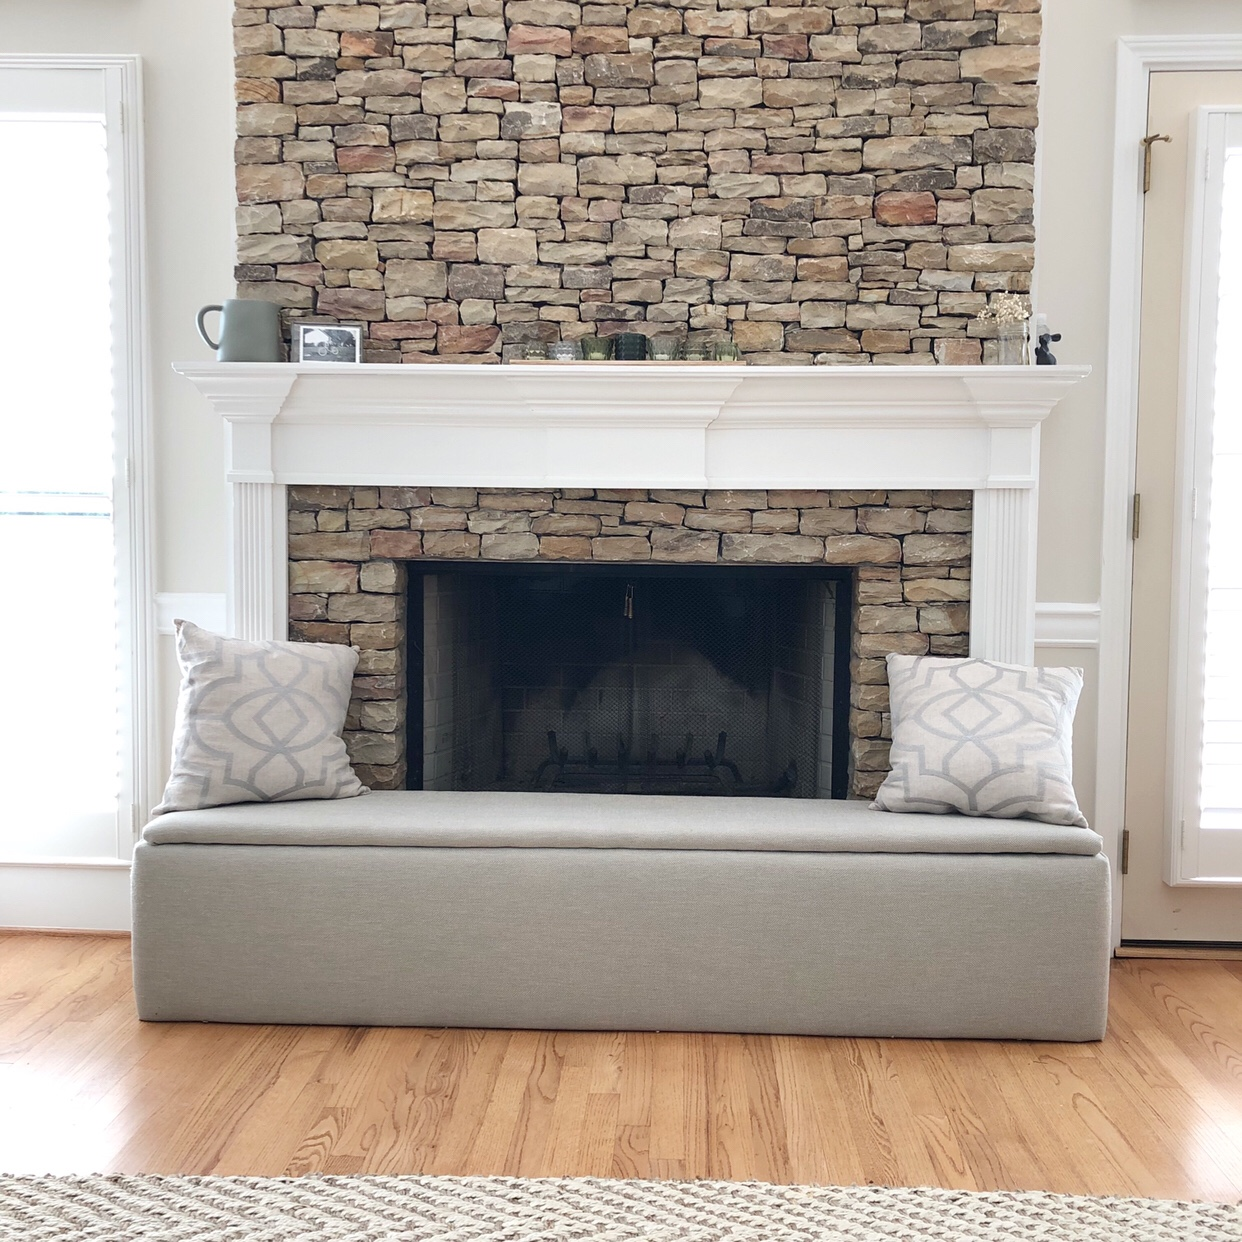 Hearth Covers: How To Make A Fireplace Hearth Cover